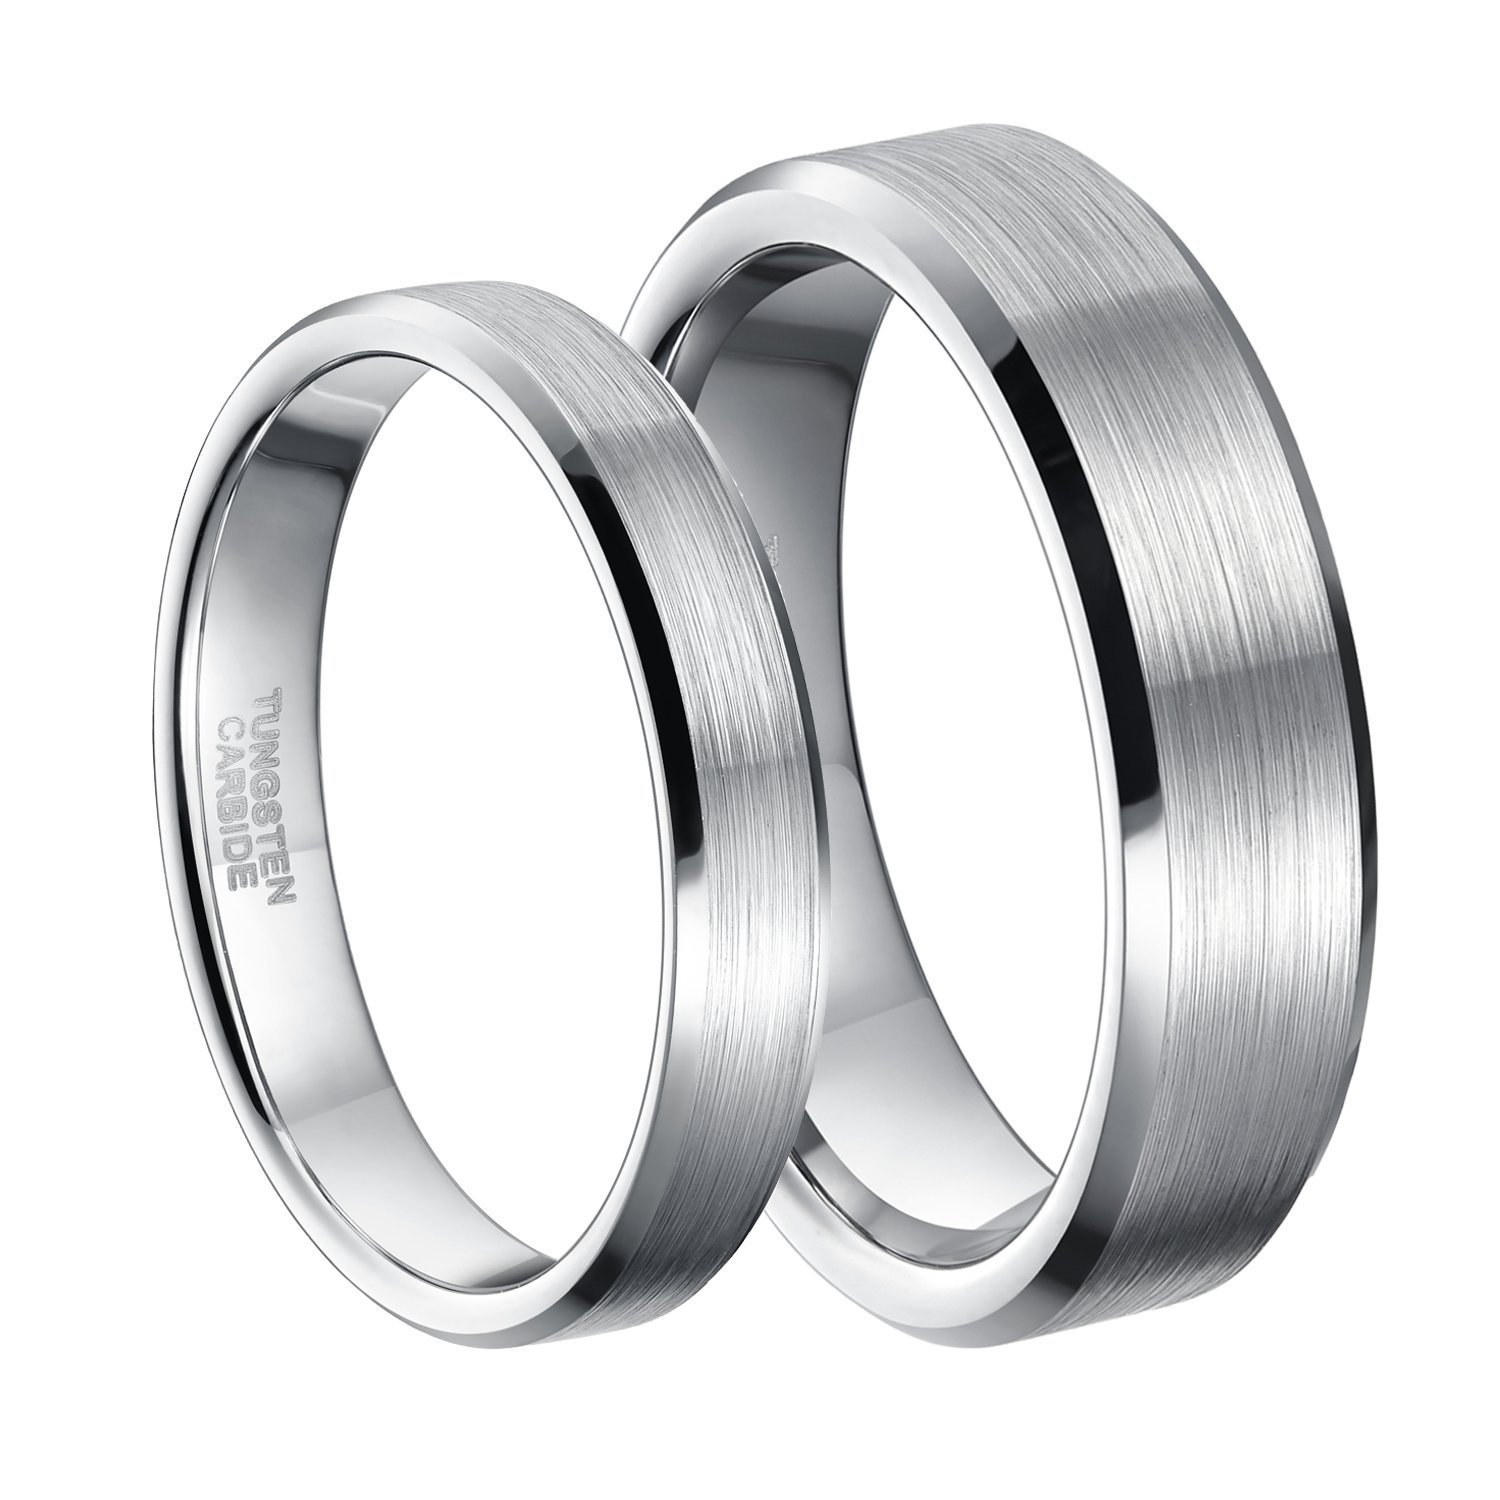 6mm Silver Tungsten Carbide Ring for Men Women Beveled Edge Unisex Brushed Wedding Band Size 8.5